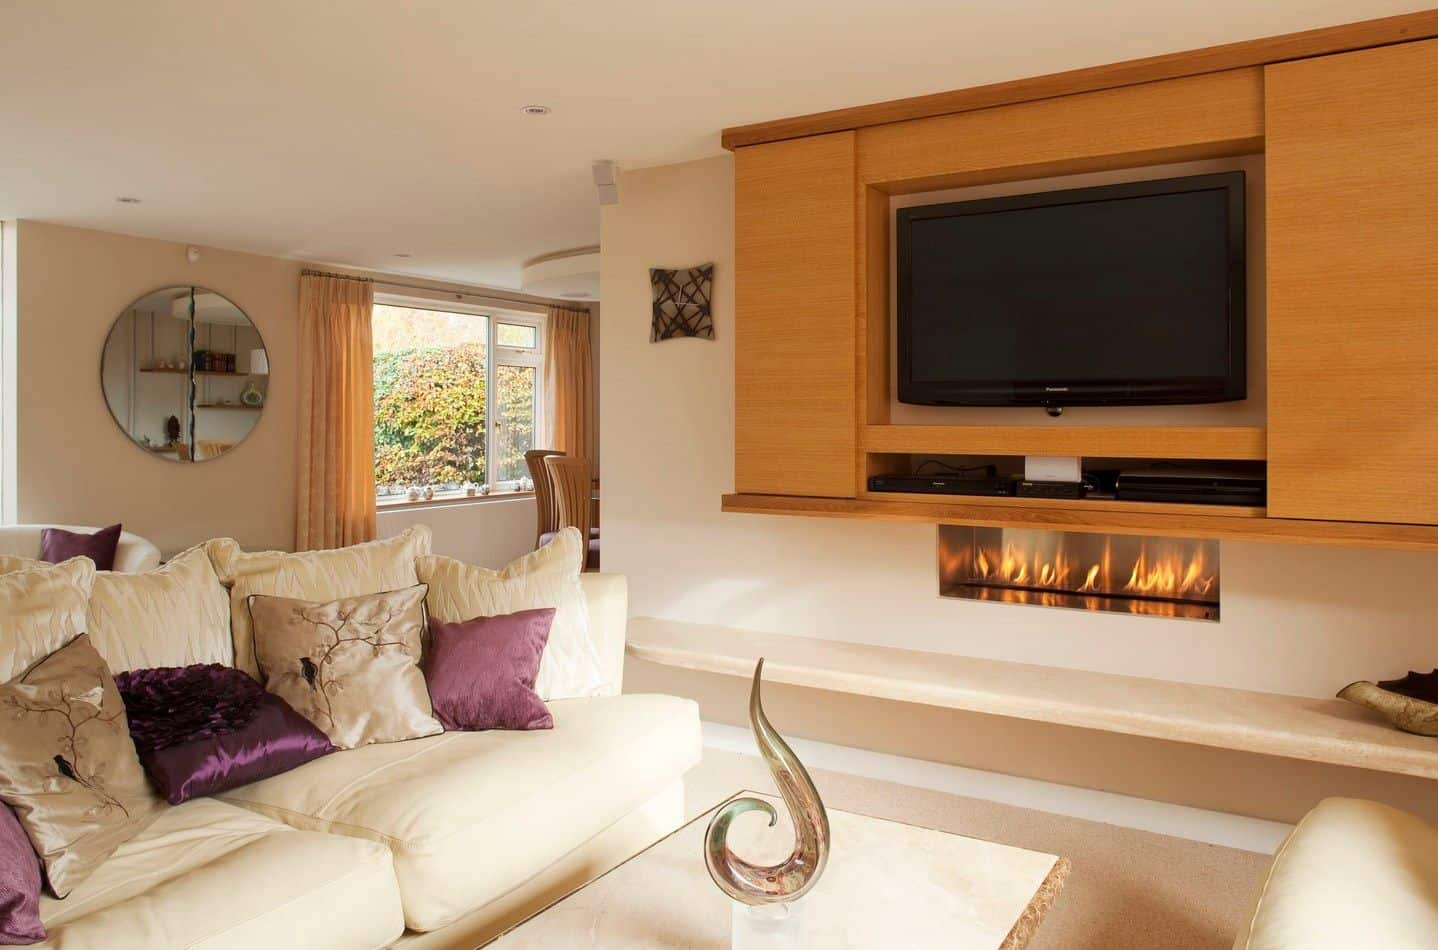 Fabulous living room showcases a television fitted in the middle of wooden storage that hung above the modern fireplace. It includes a marble coffee table and white sectional accented with purple pillows.